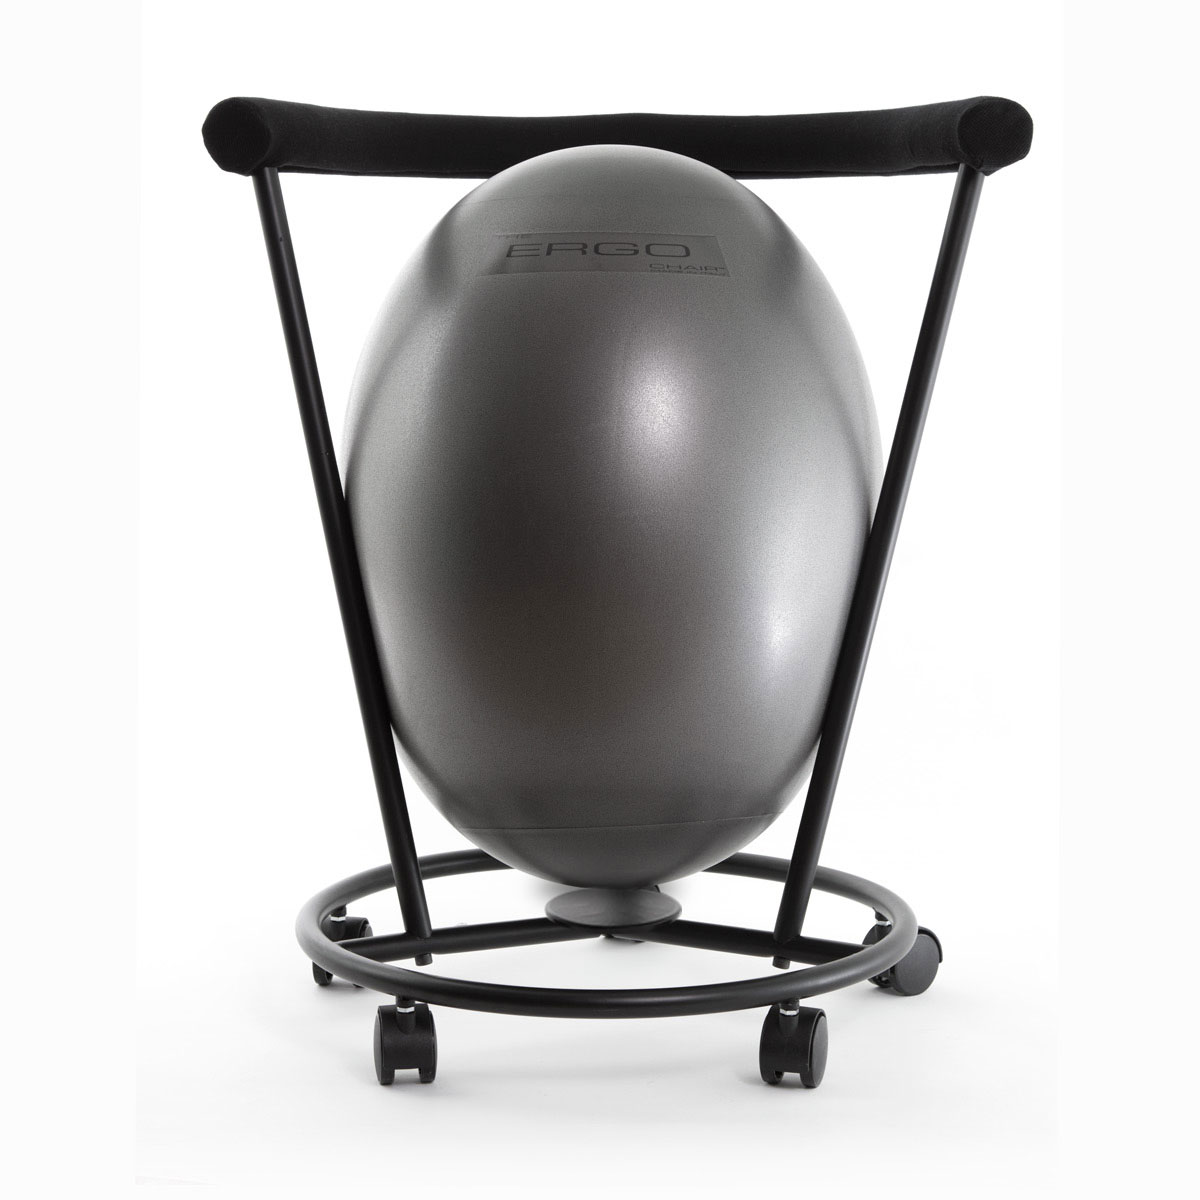 Ball Chair Benefits Original Ergo Chair The Ergo Chair